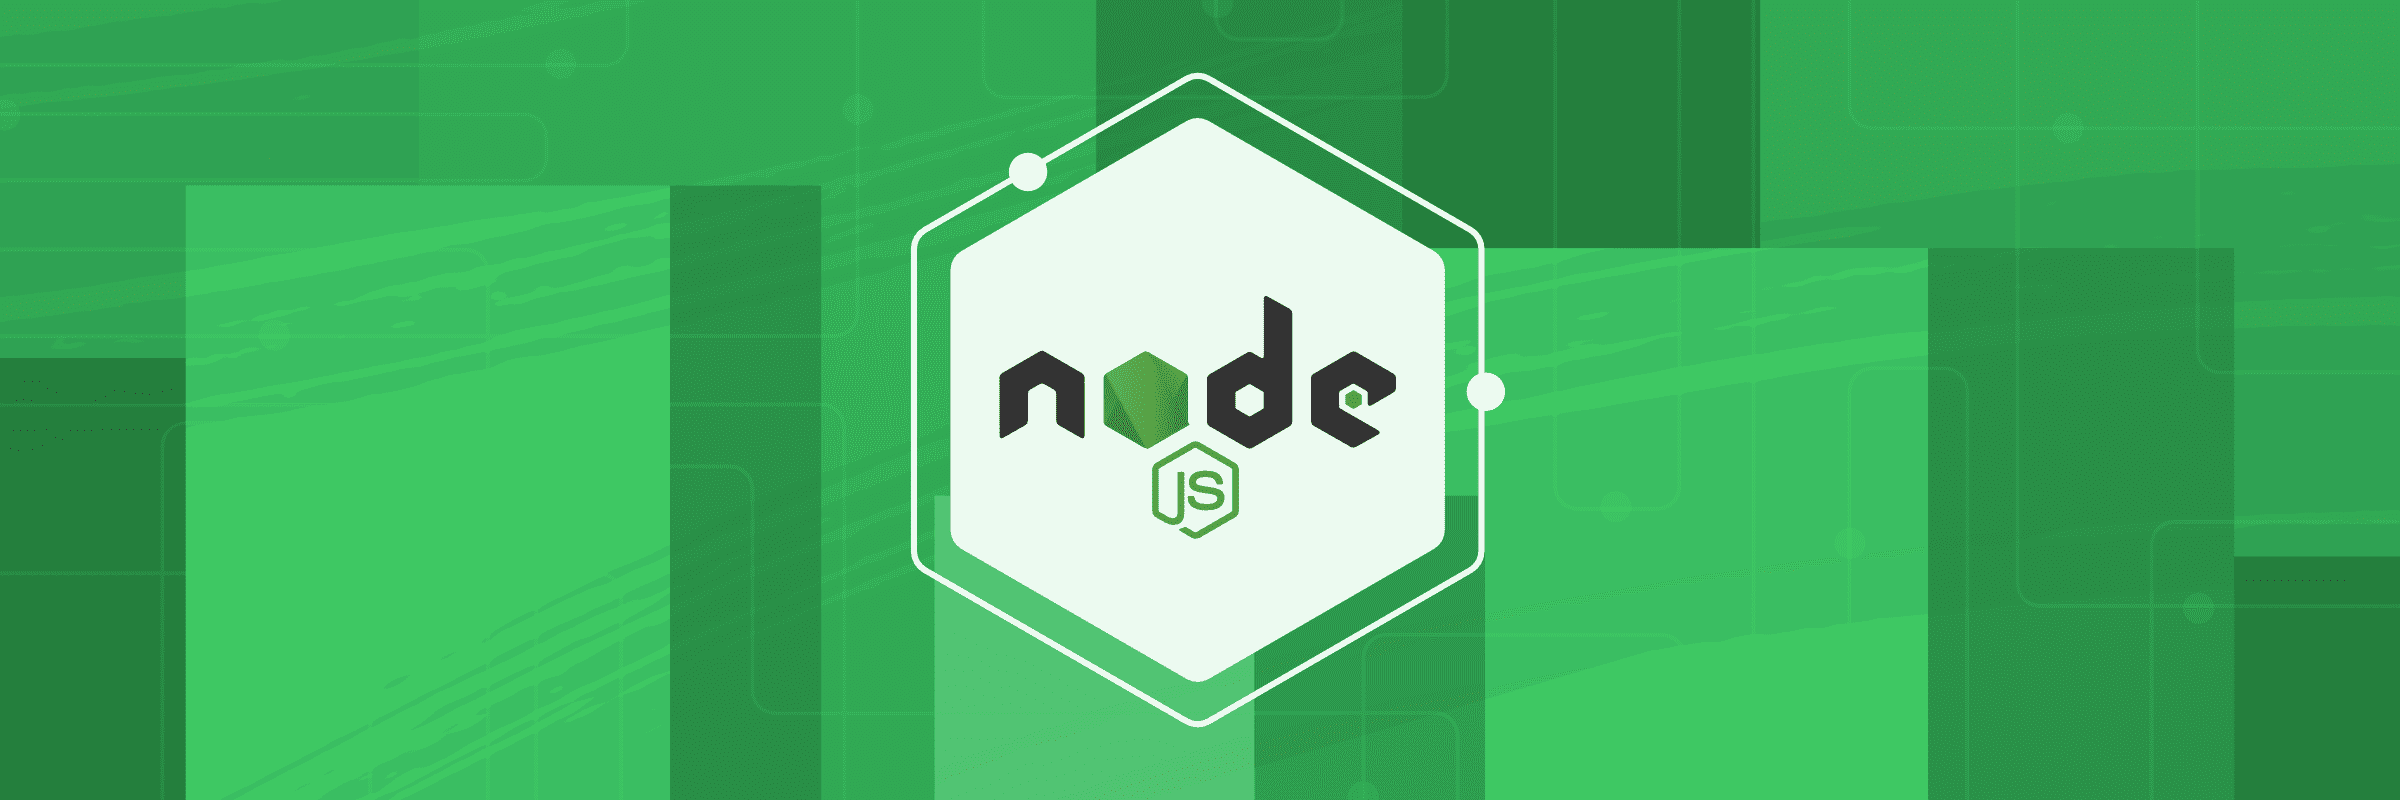 How to automate tests and deployments of Node.js apps with Buddy